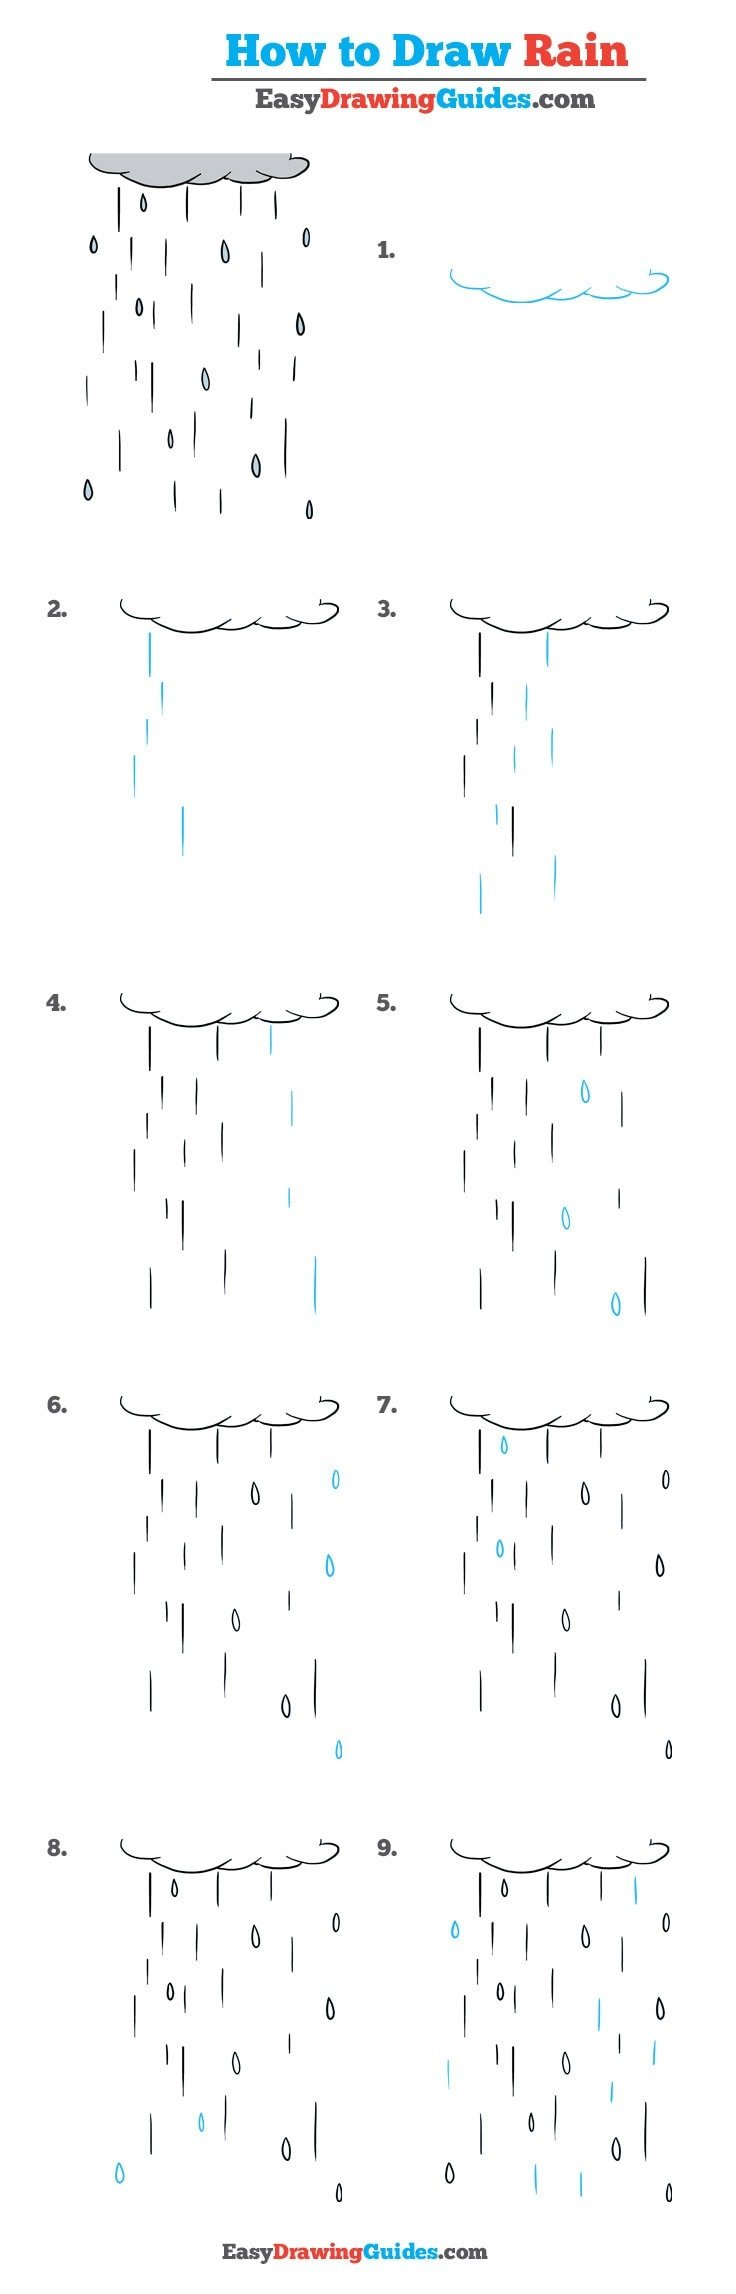 How to Draw Rain